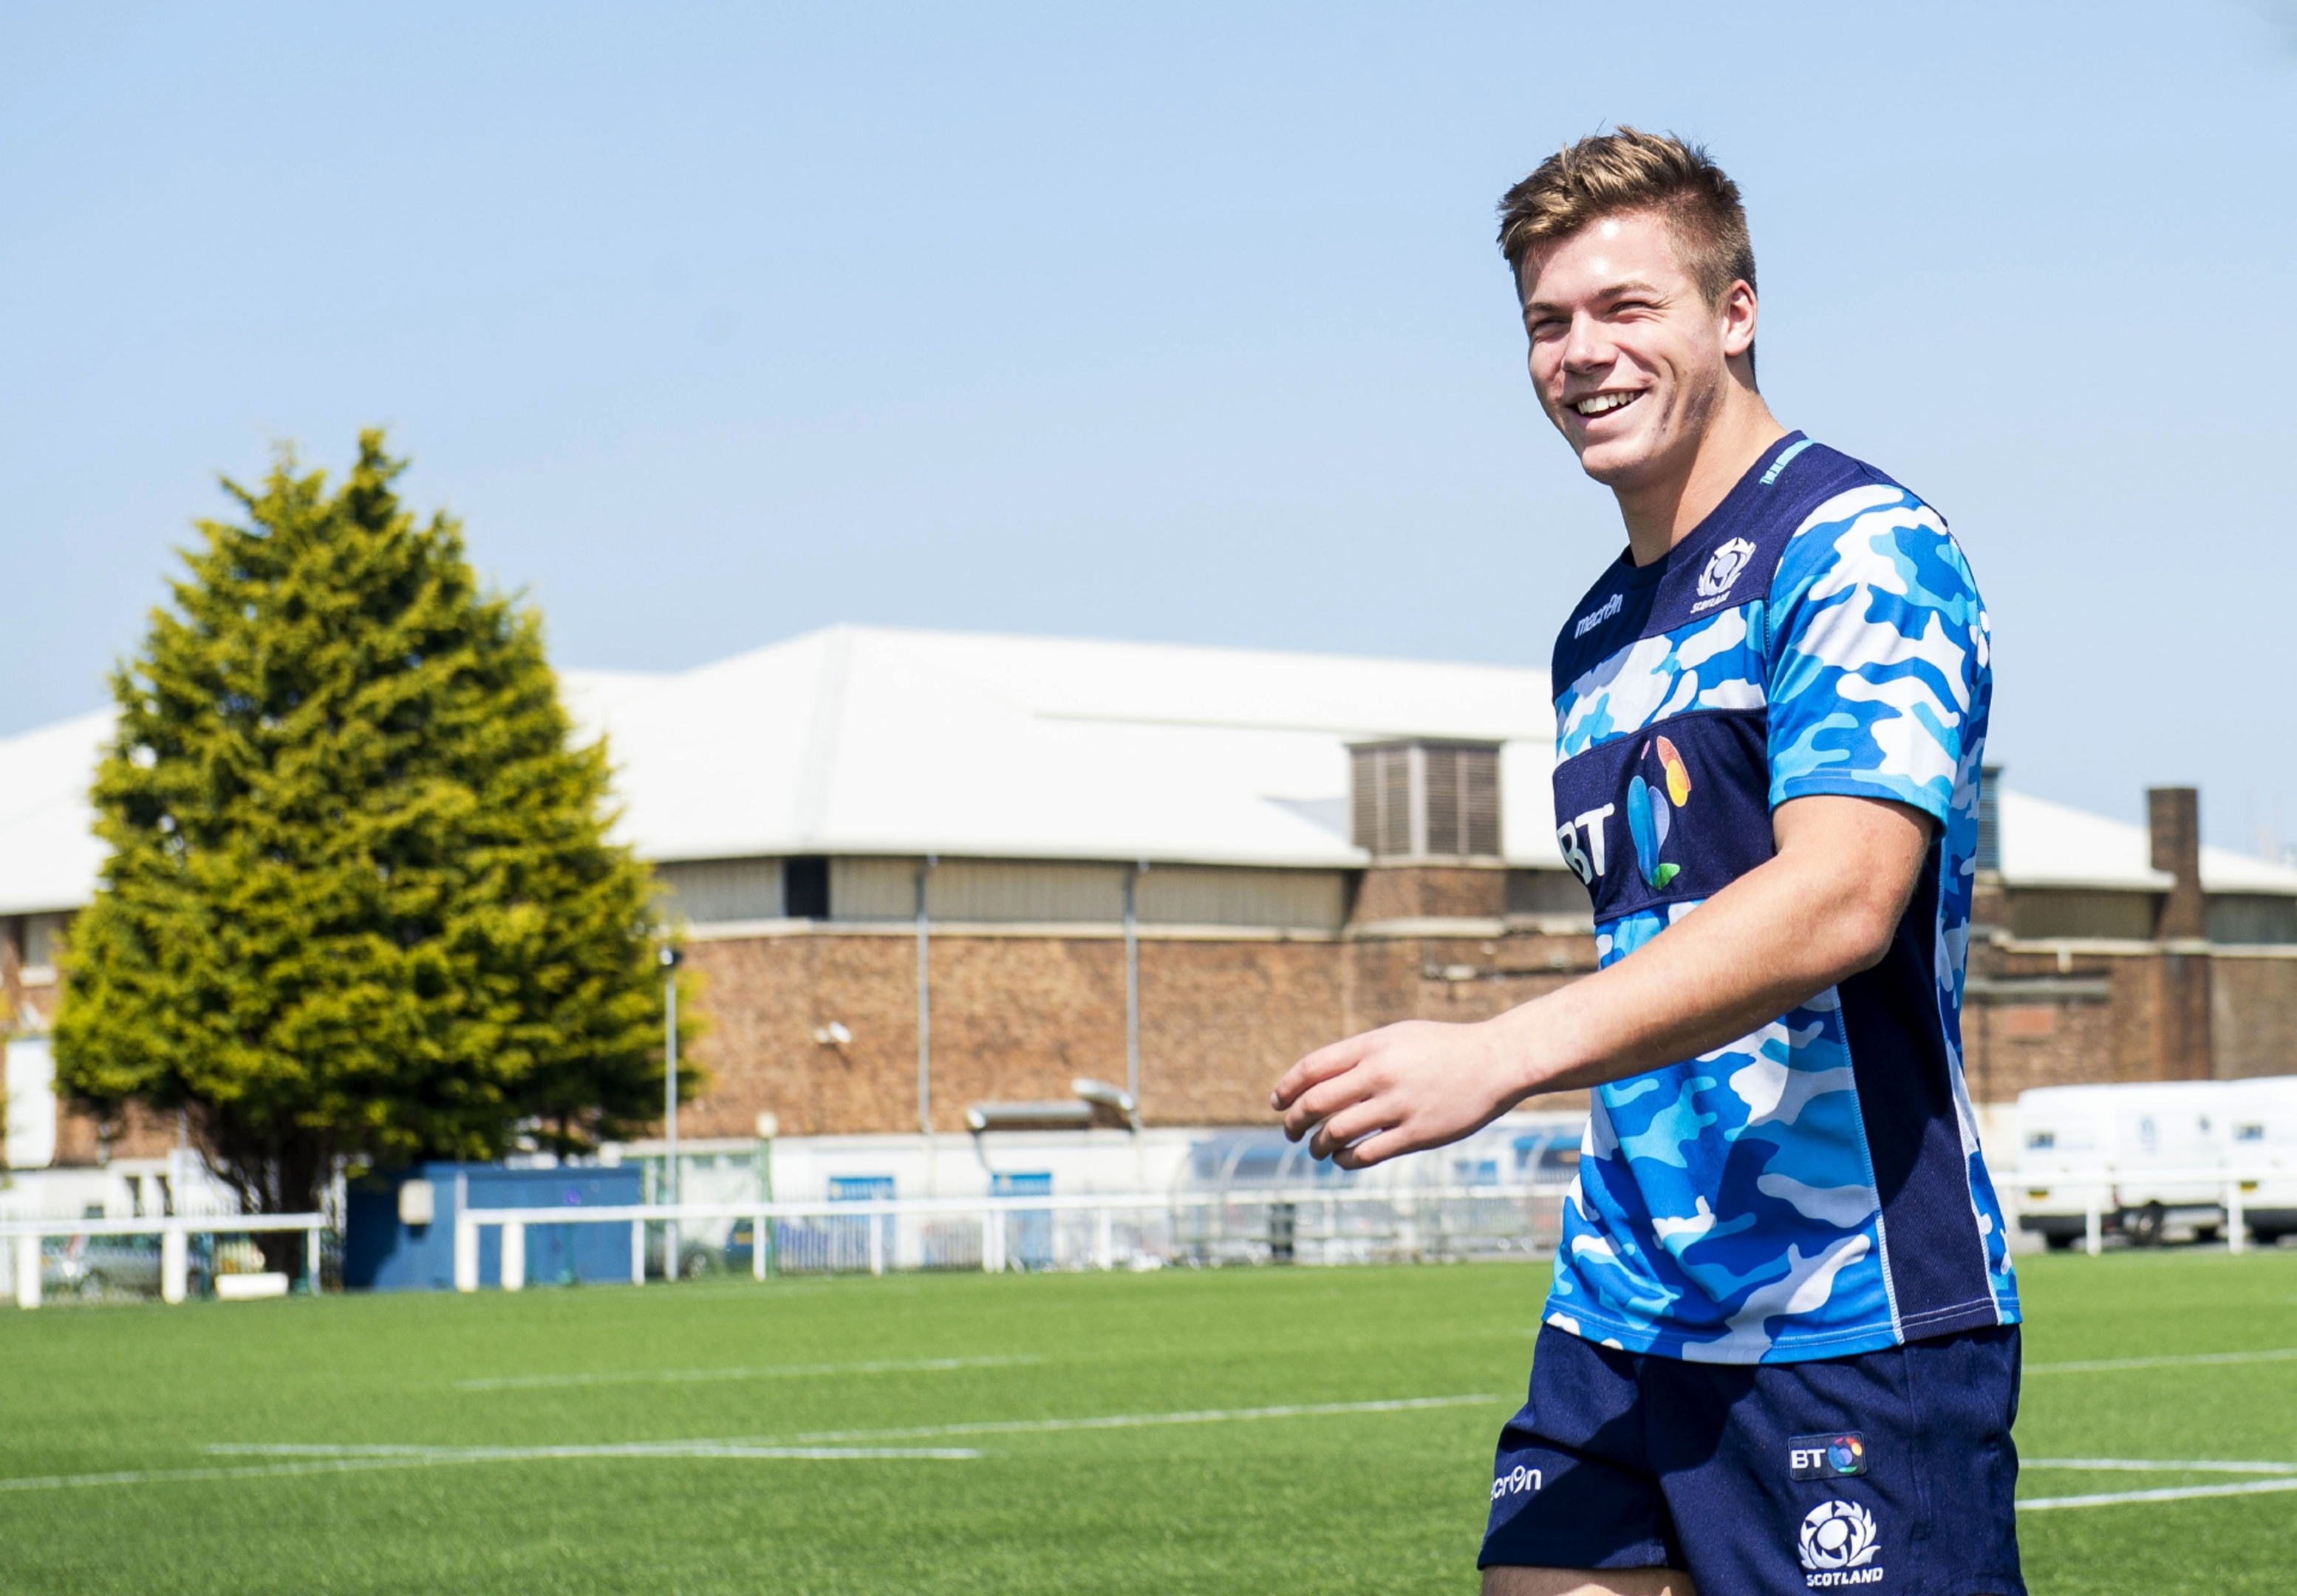 Huw Jones took no time to consider whether to join up with Scotland.